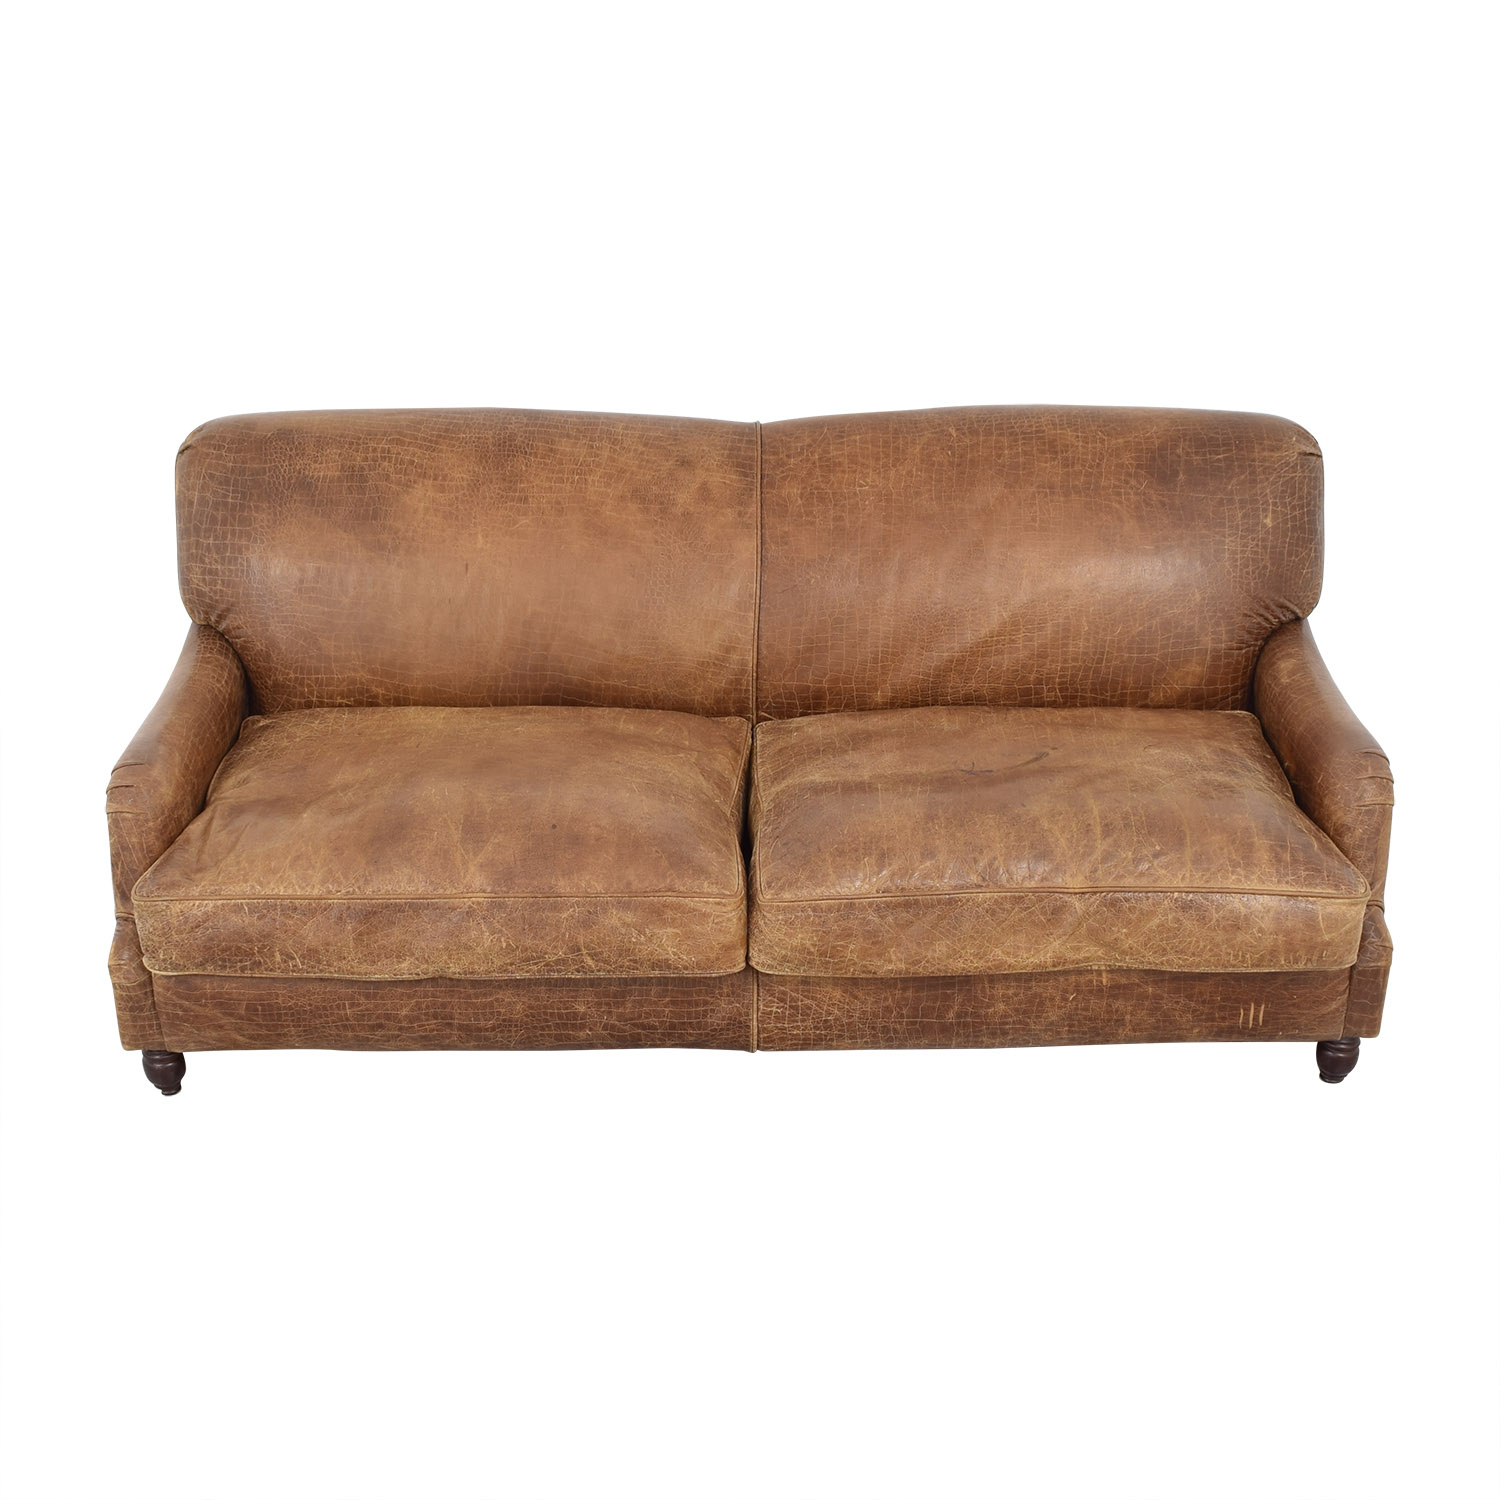 shop Andrew Martin Andrew Martin Leather Sofa online